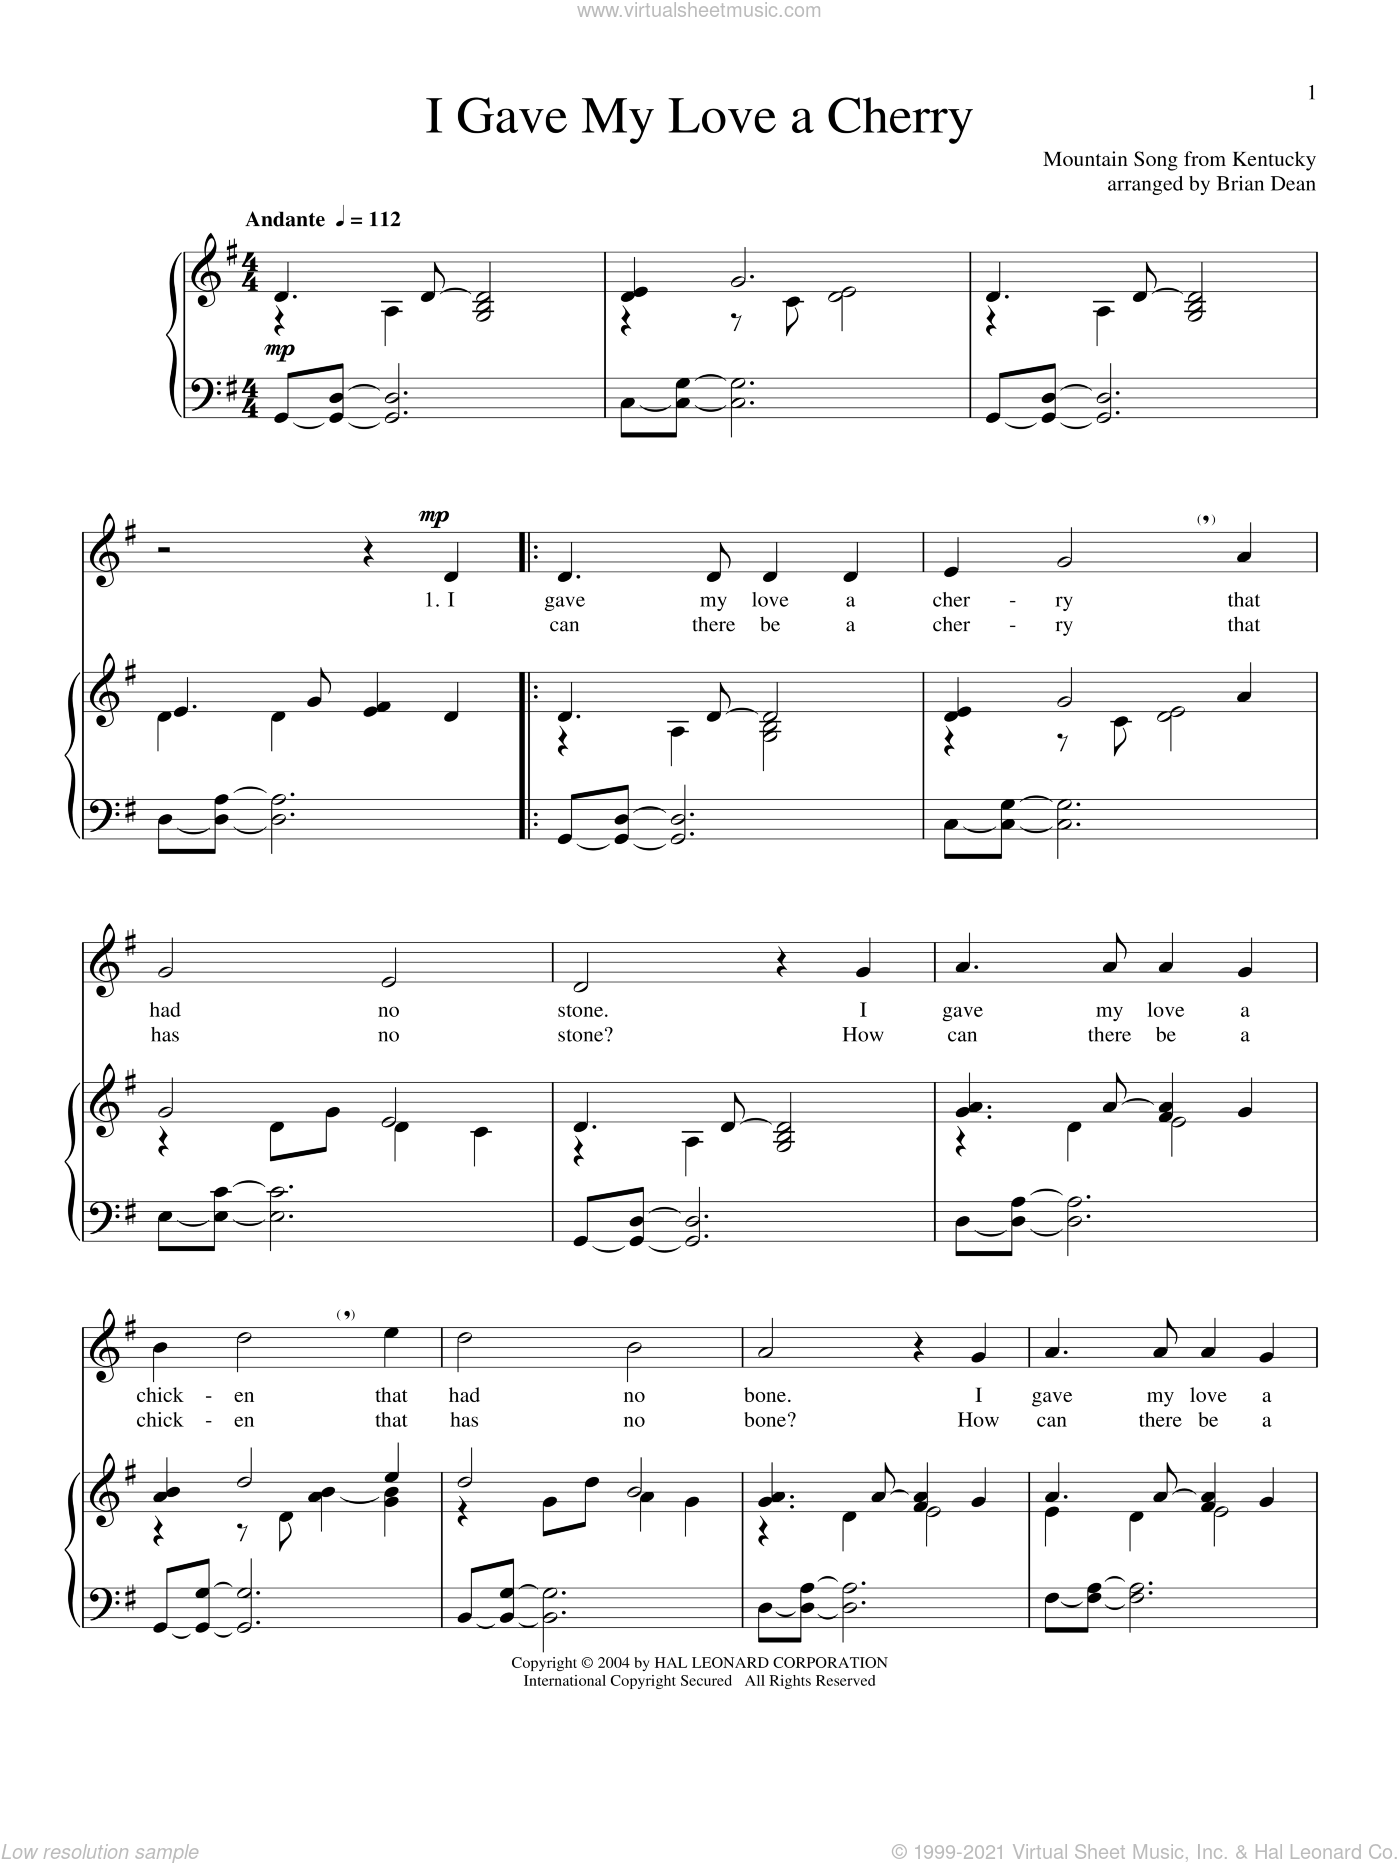 I Gave My Love A Cherry (The Riddle Song) sheet music for voice and piano, intermediate skill level